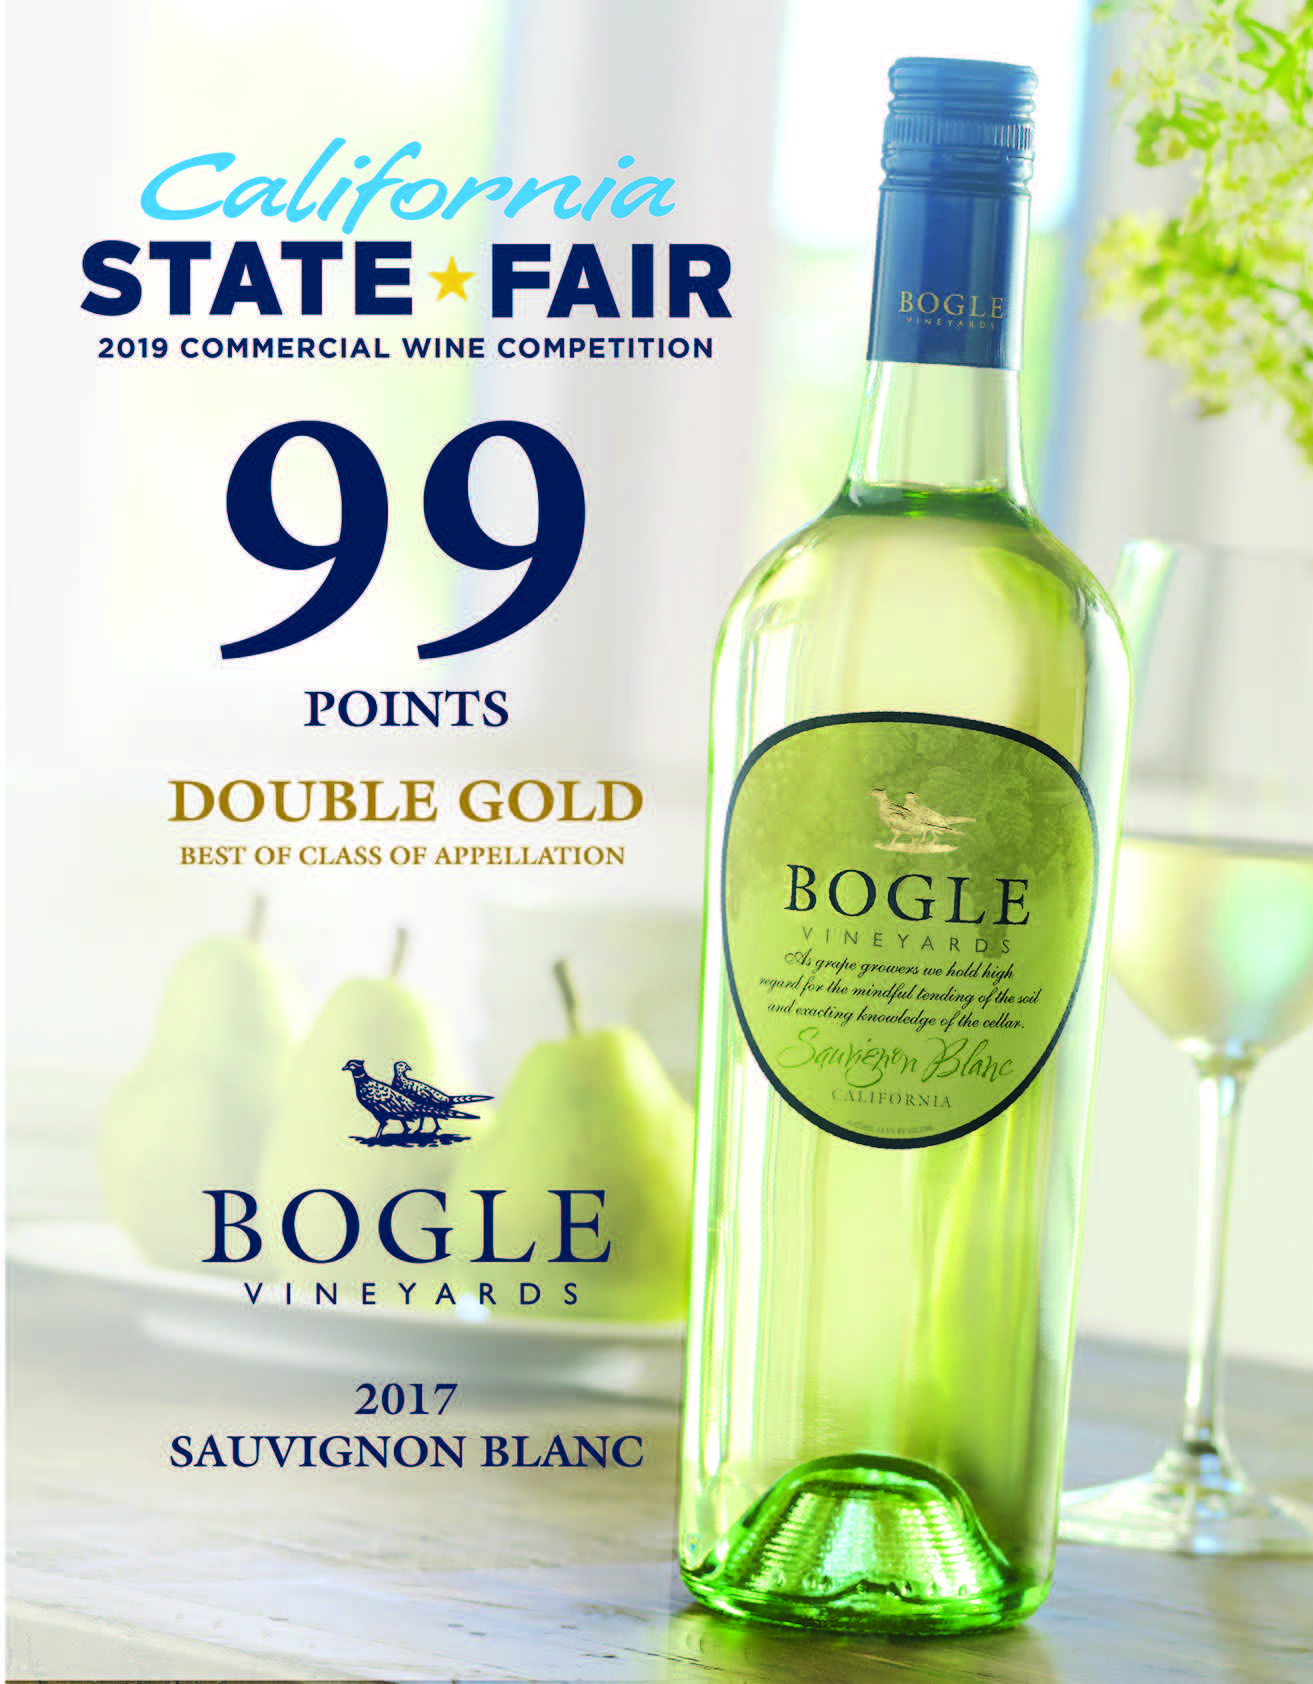 2017 Sauvignon Blanc 99 Pts Double Gold State Fair